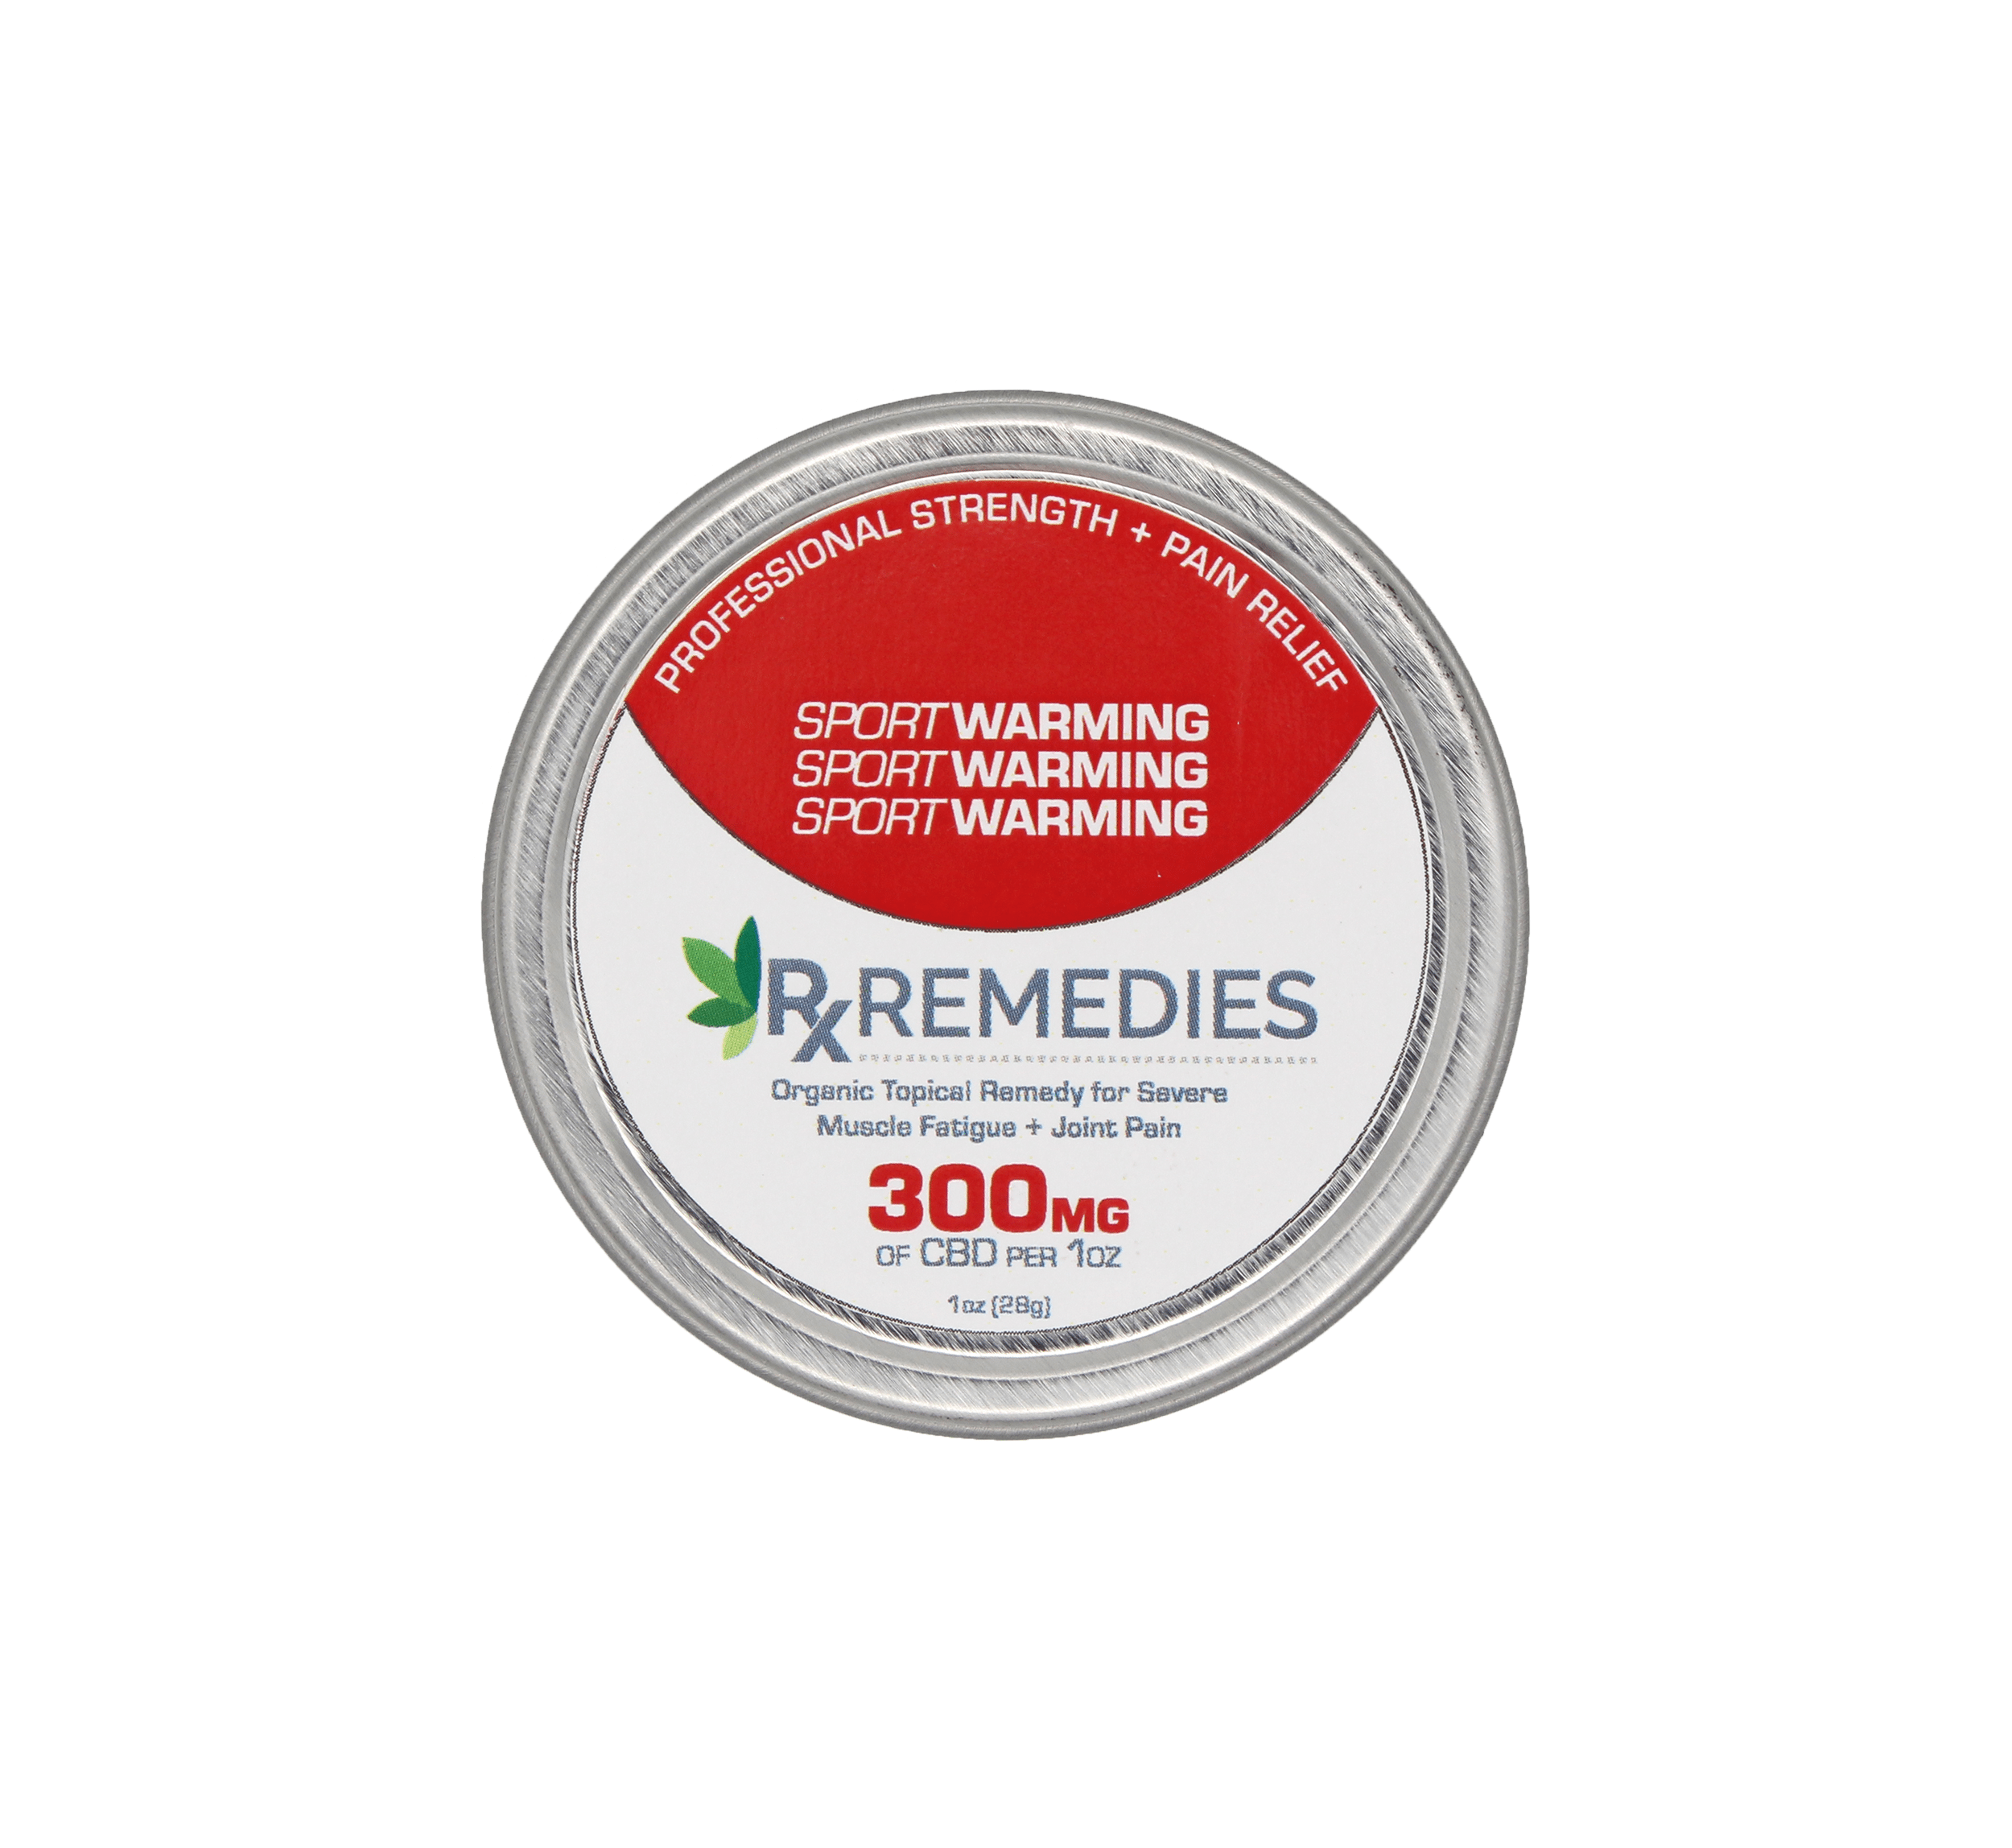 Rx Remedies CBD Warming Balm 300mgs of CBD